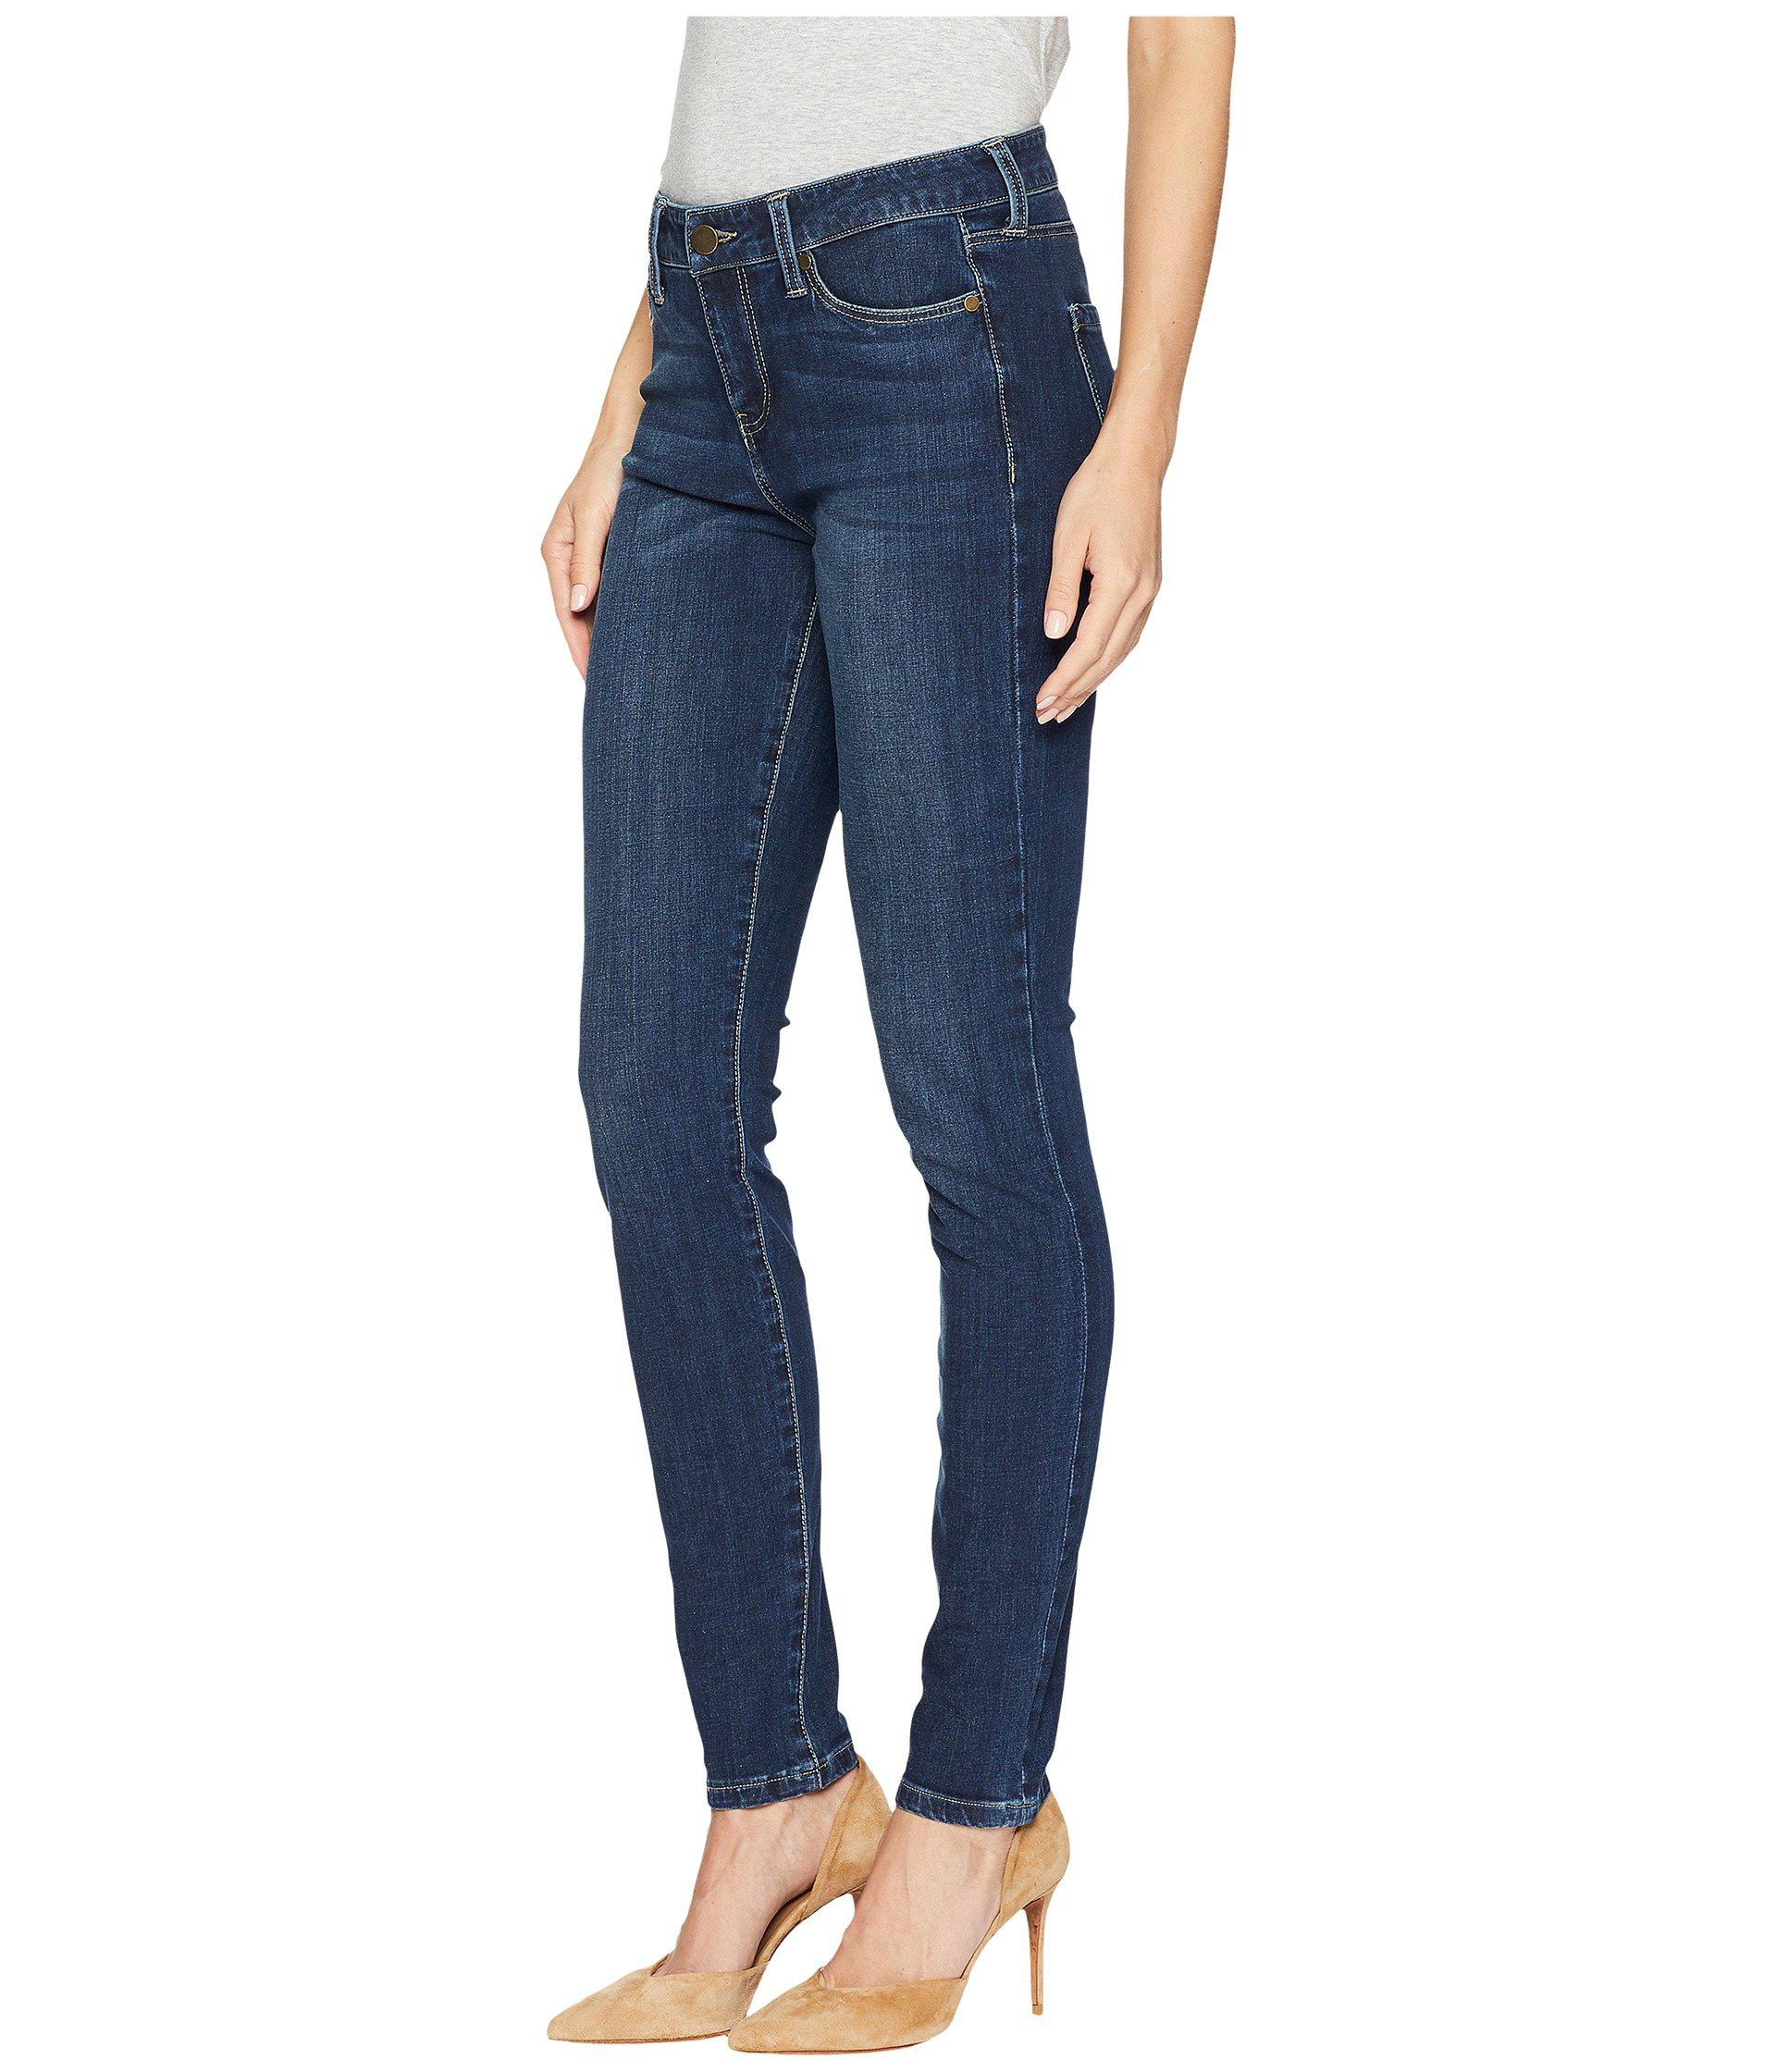 1cba810b423161 Lyst - Liverpool Jeans Company Abby Skinny Jeans With Shaping And Slimming  Four-way Stretch Denim In Lynx Wash (lynx Wash) Women's Jeans in Blue